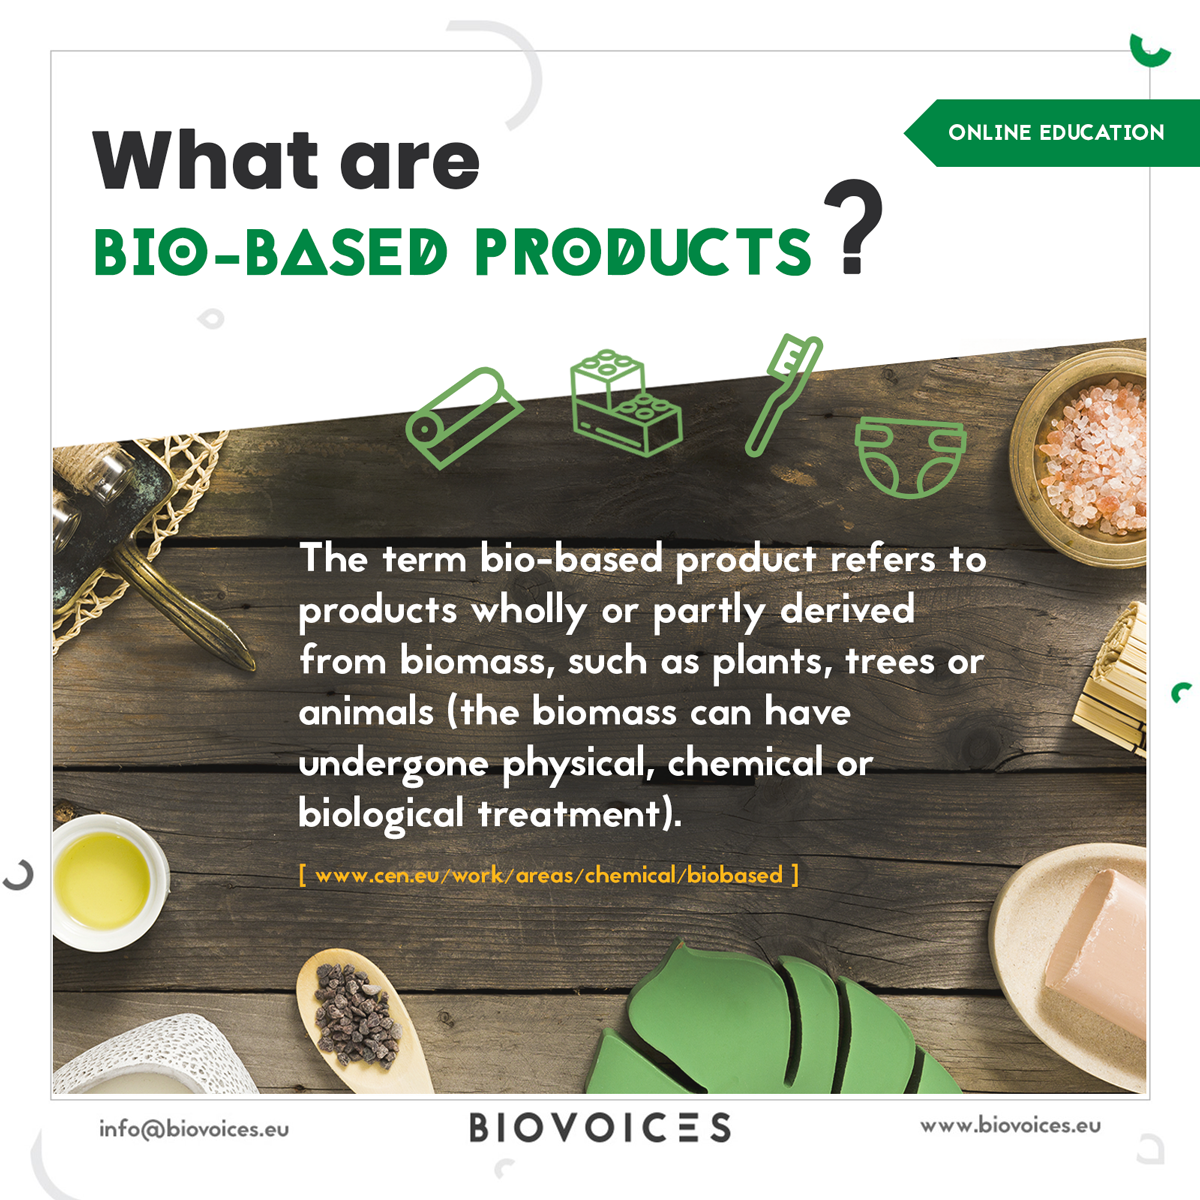 What are bio-based products?